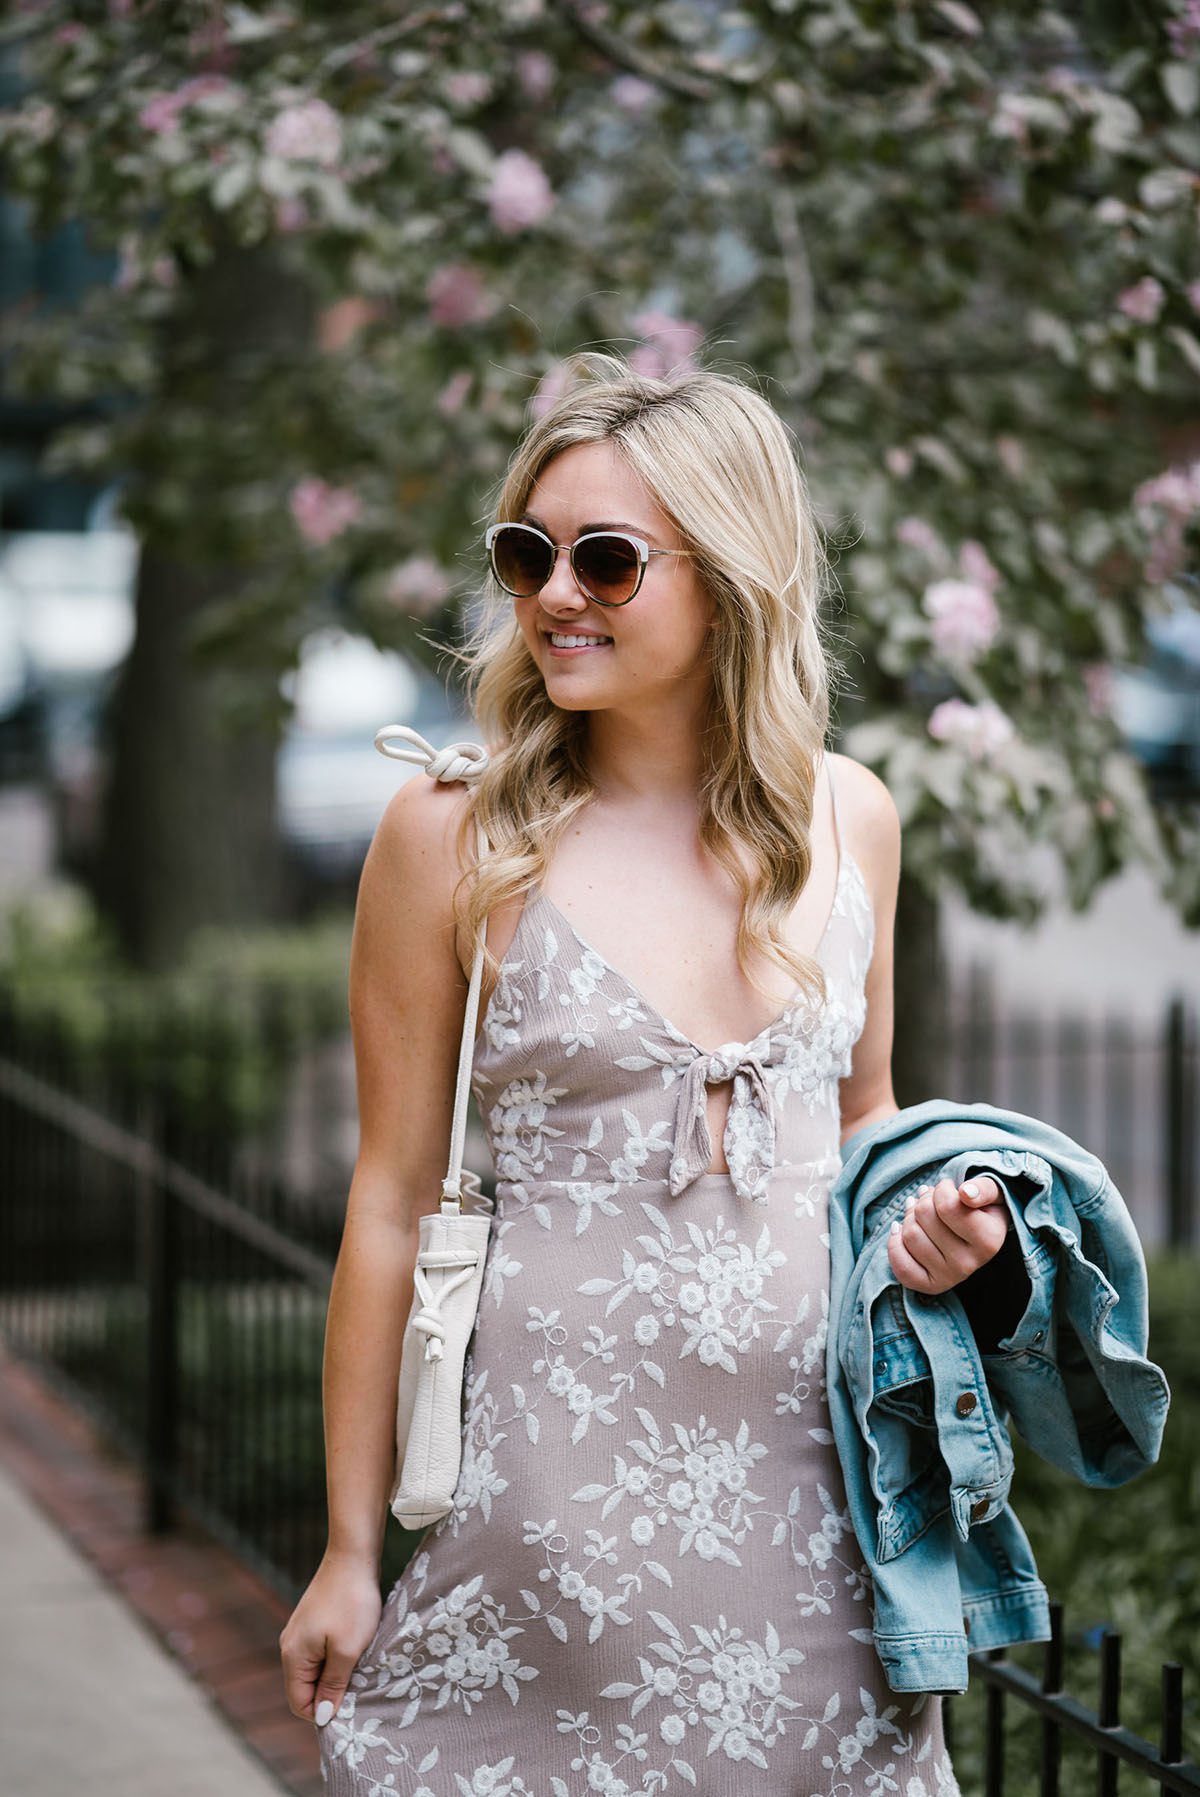 Jessica of Bows & Sequins wearing a tie-front floral midi dress, Call It Spring white frame sunglasses, and a Clare V bag with a Gap jean jacket.